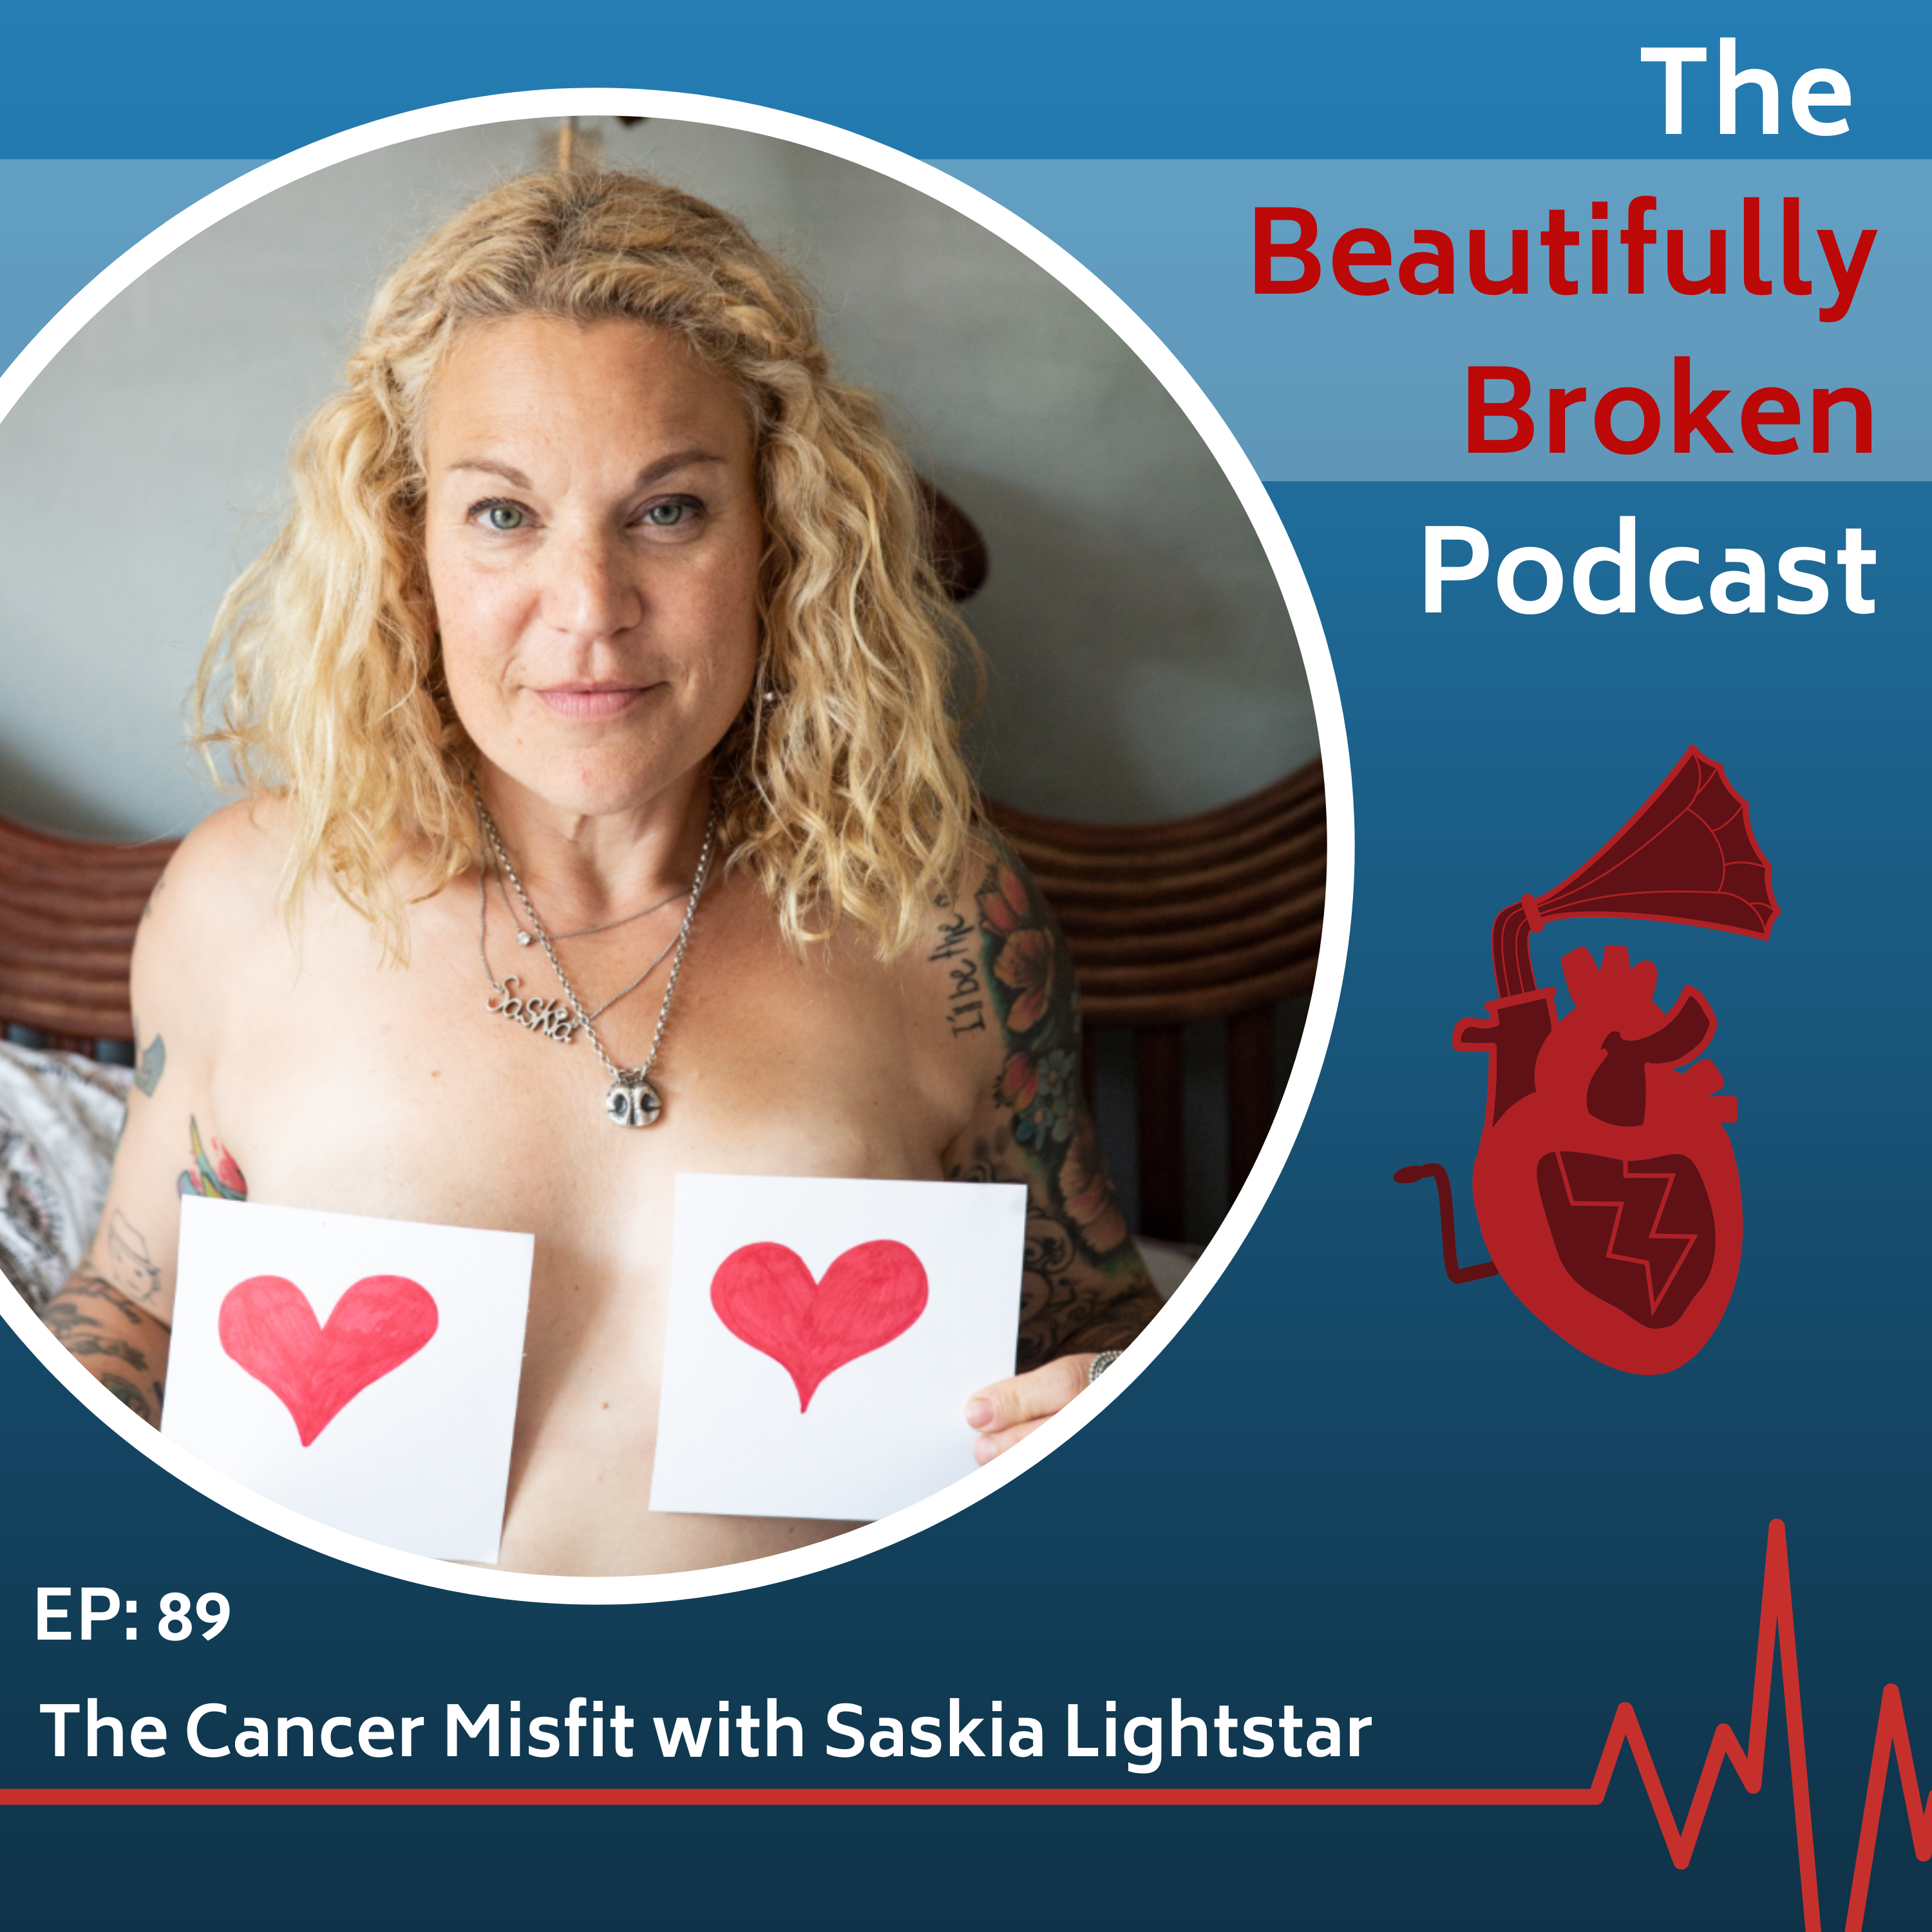 The Cancer Mistfit Saskia Lightstar